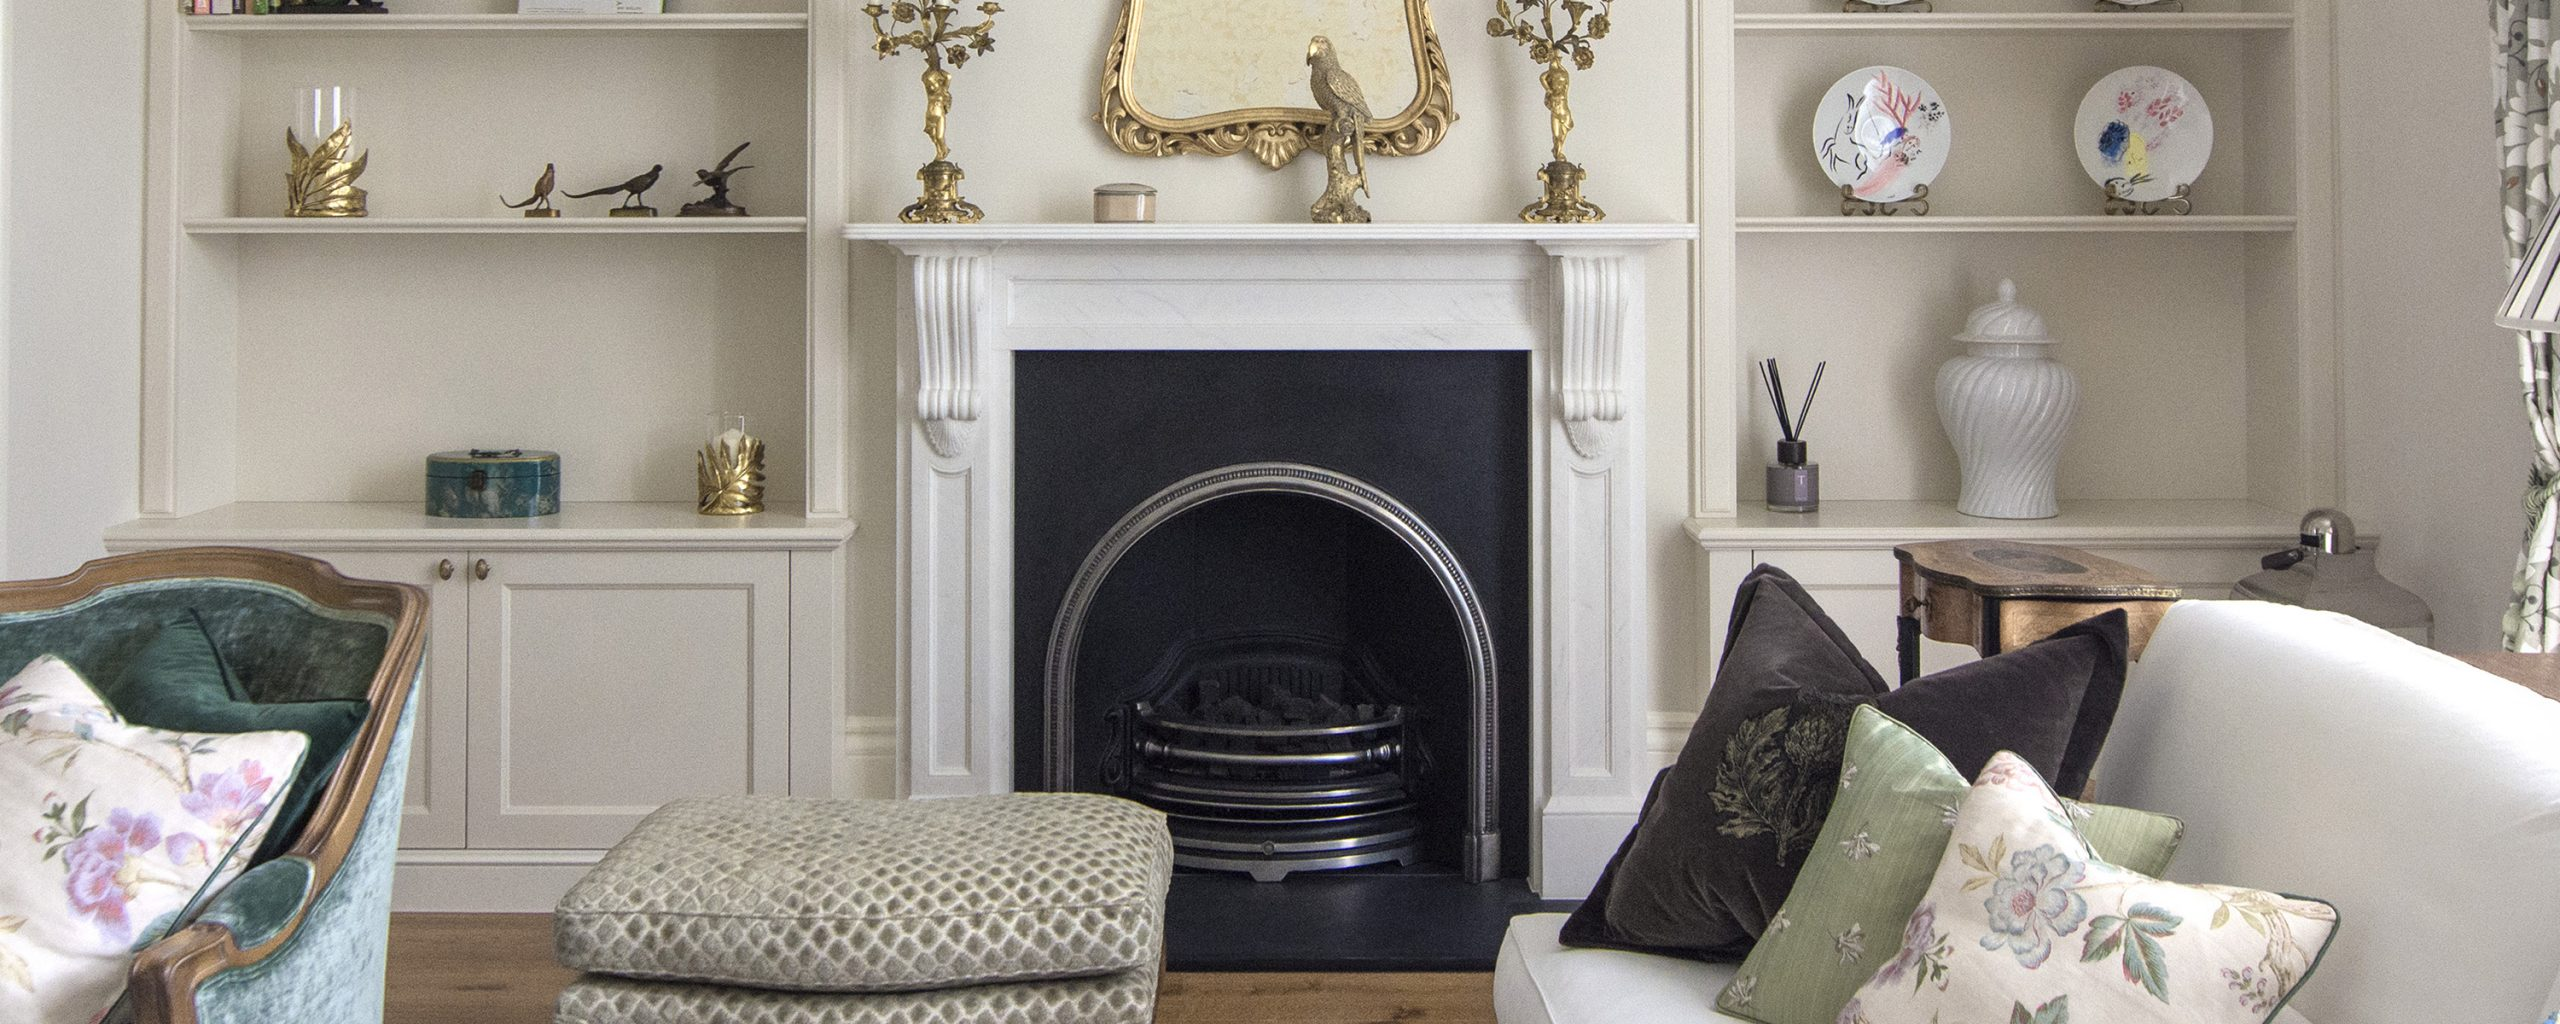 TOP 5 SHOW-STOPPING FIREPLACES TO WARM YOU UP THIS WINTER